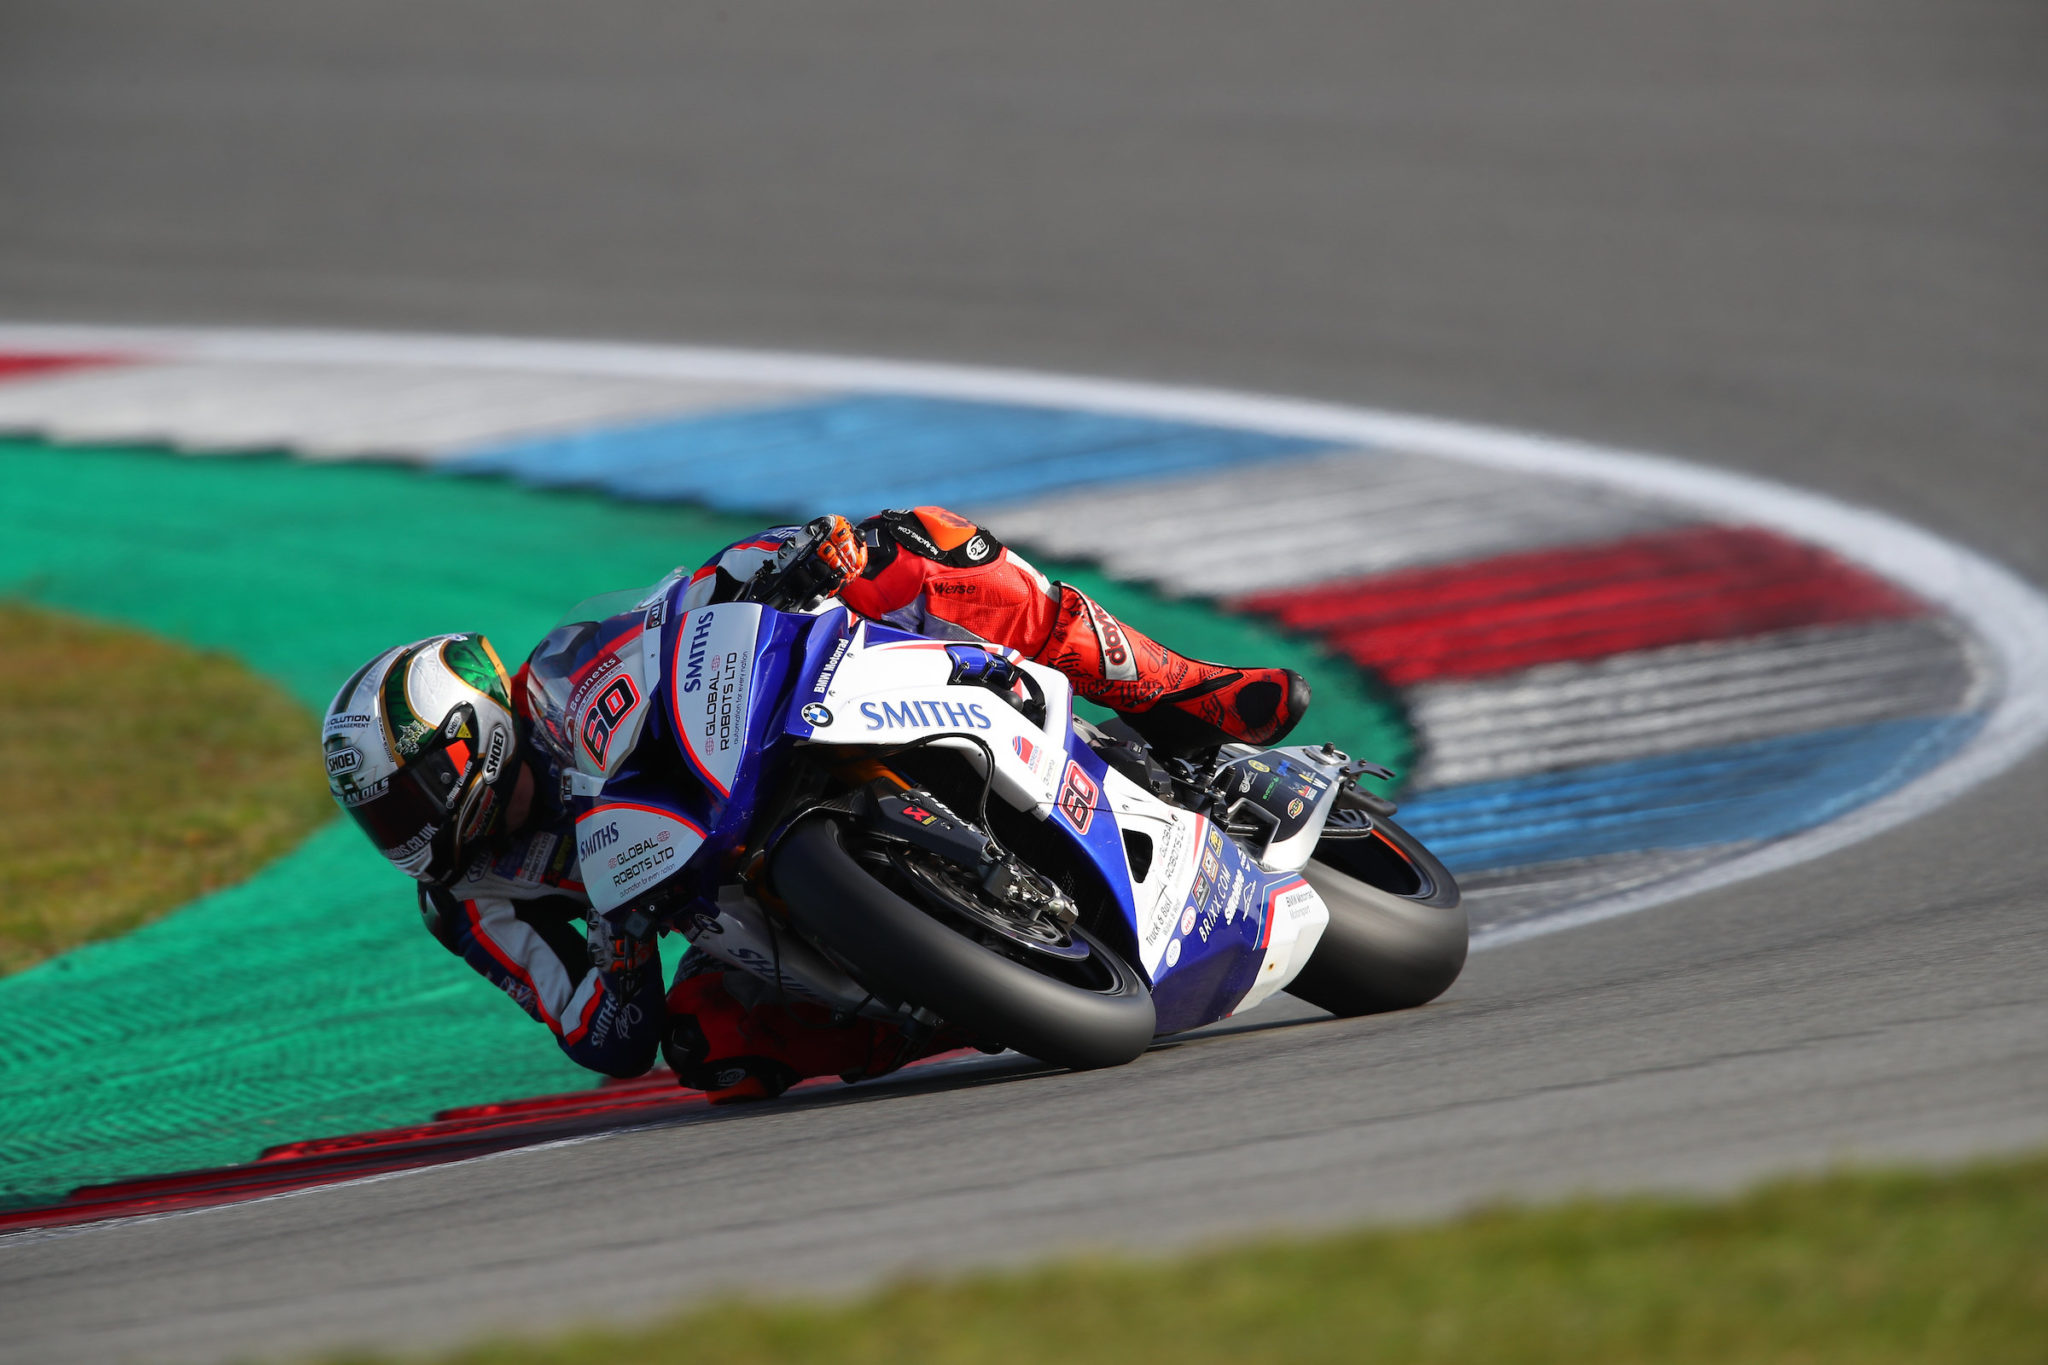 Hickman placed third and fourth in Assen credit Double Red